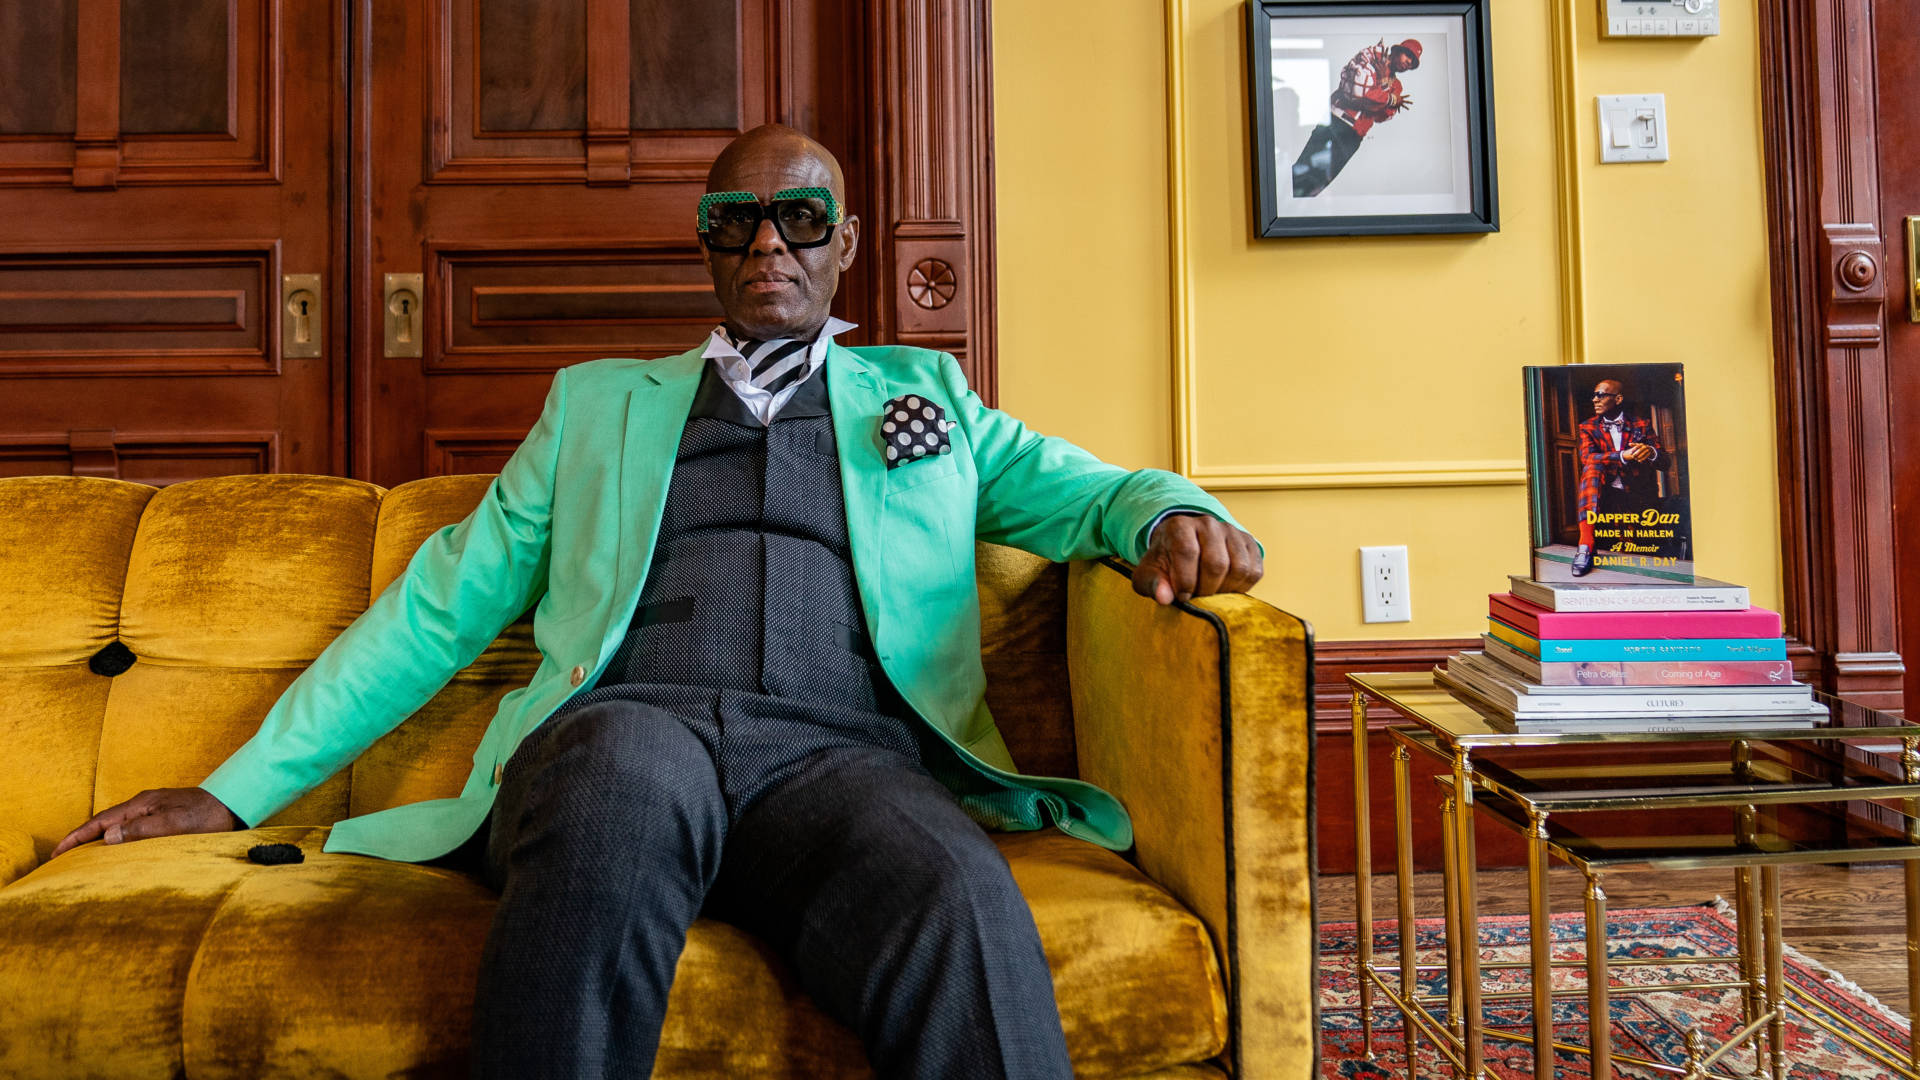 """I consider myself one who creates clothes, and fashions clothes, and uses it as a vehicle to fashion young minds,"" says clothier Dapper Dan. Jelani Day/Dapper Dan of Harlem"